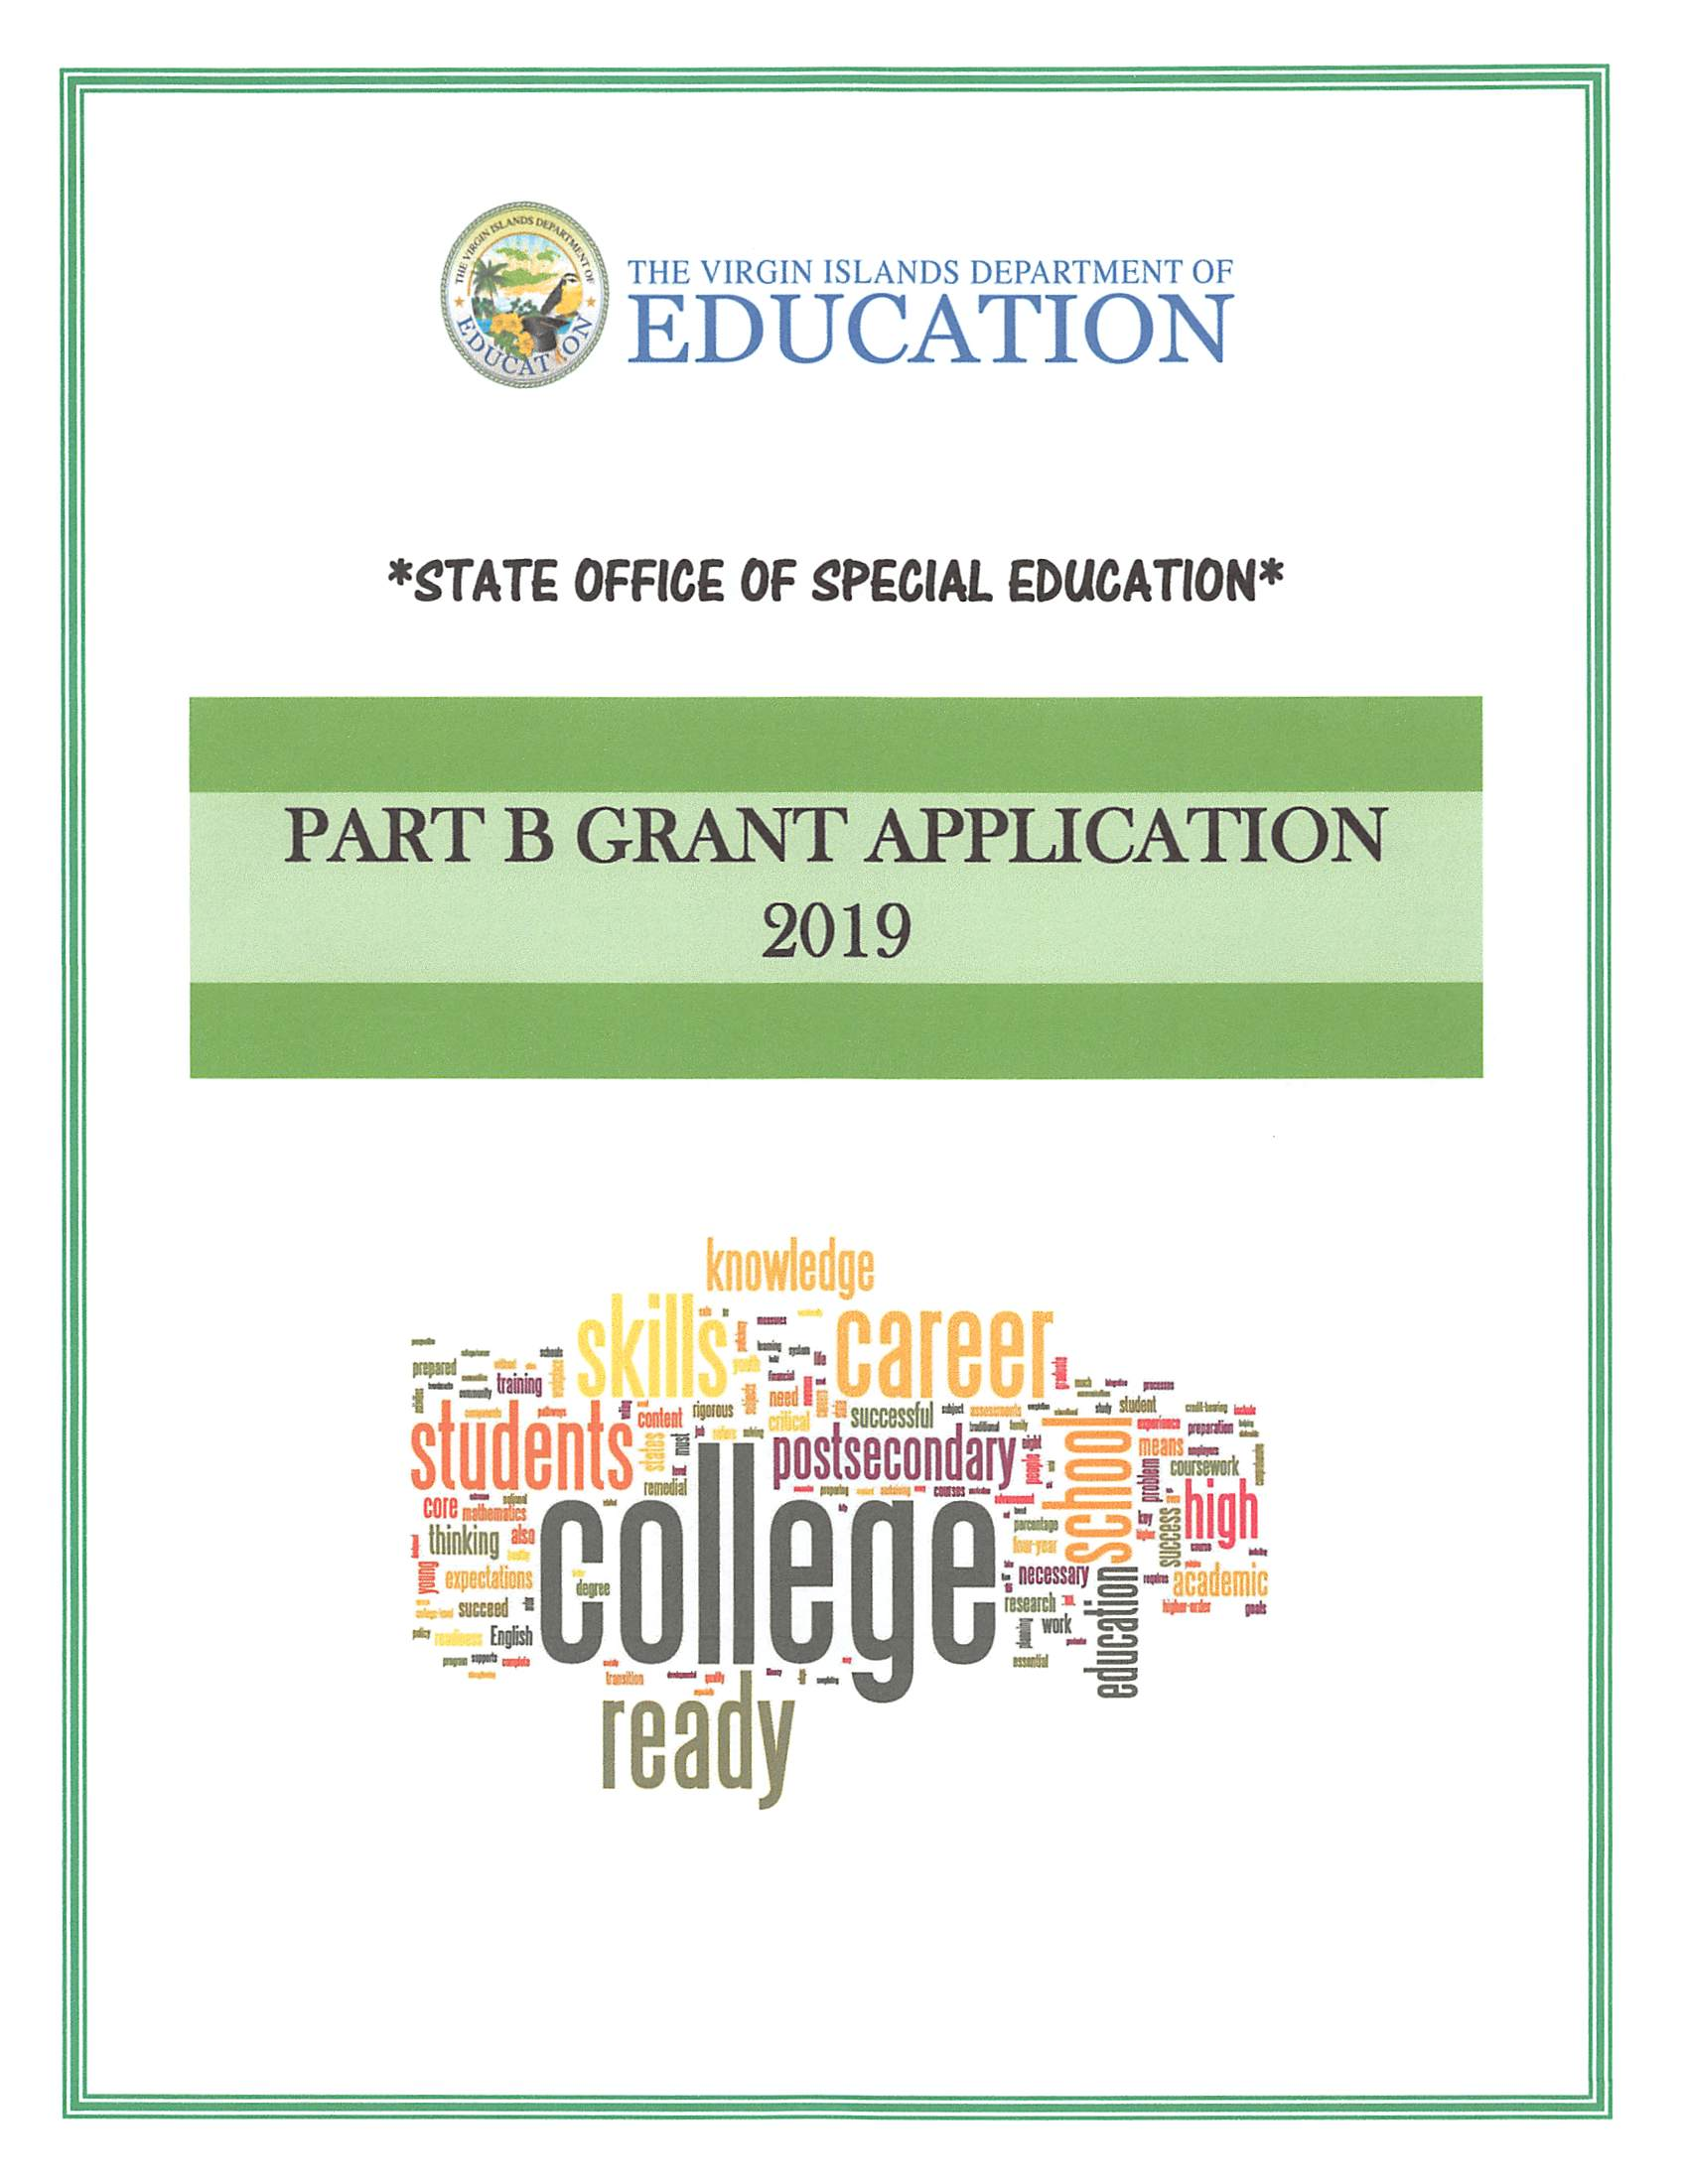 FFY 2019 Part B Grant Application_Page_01.jpg